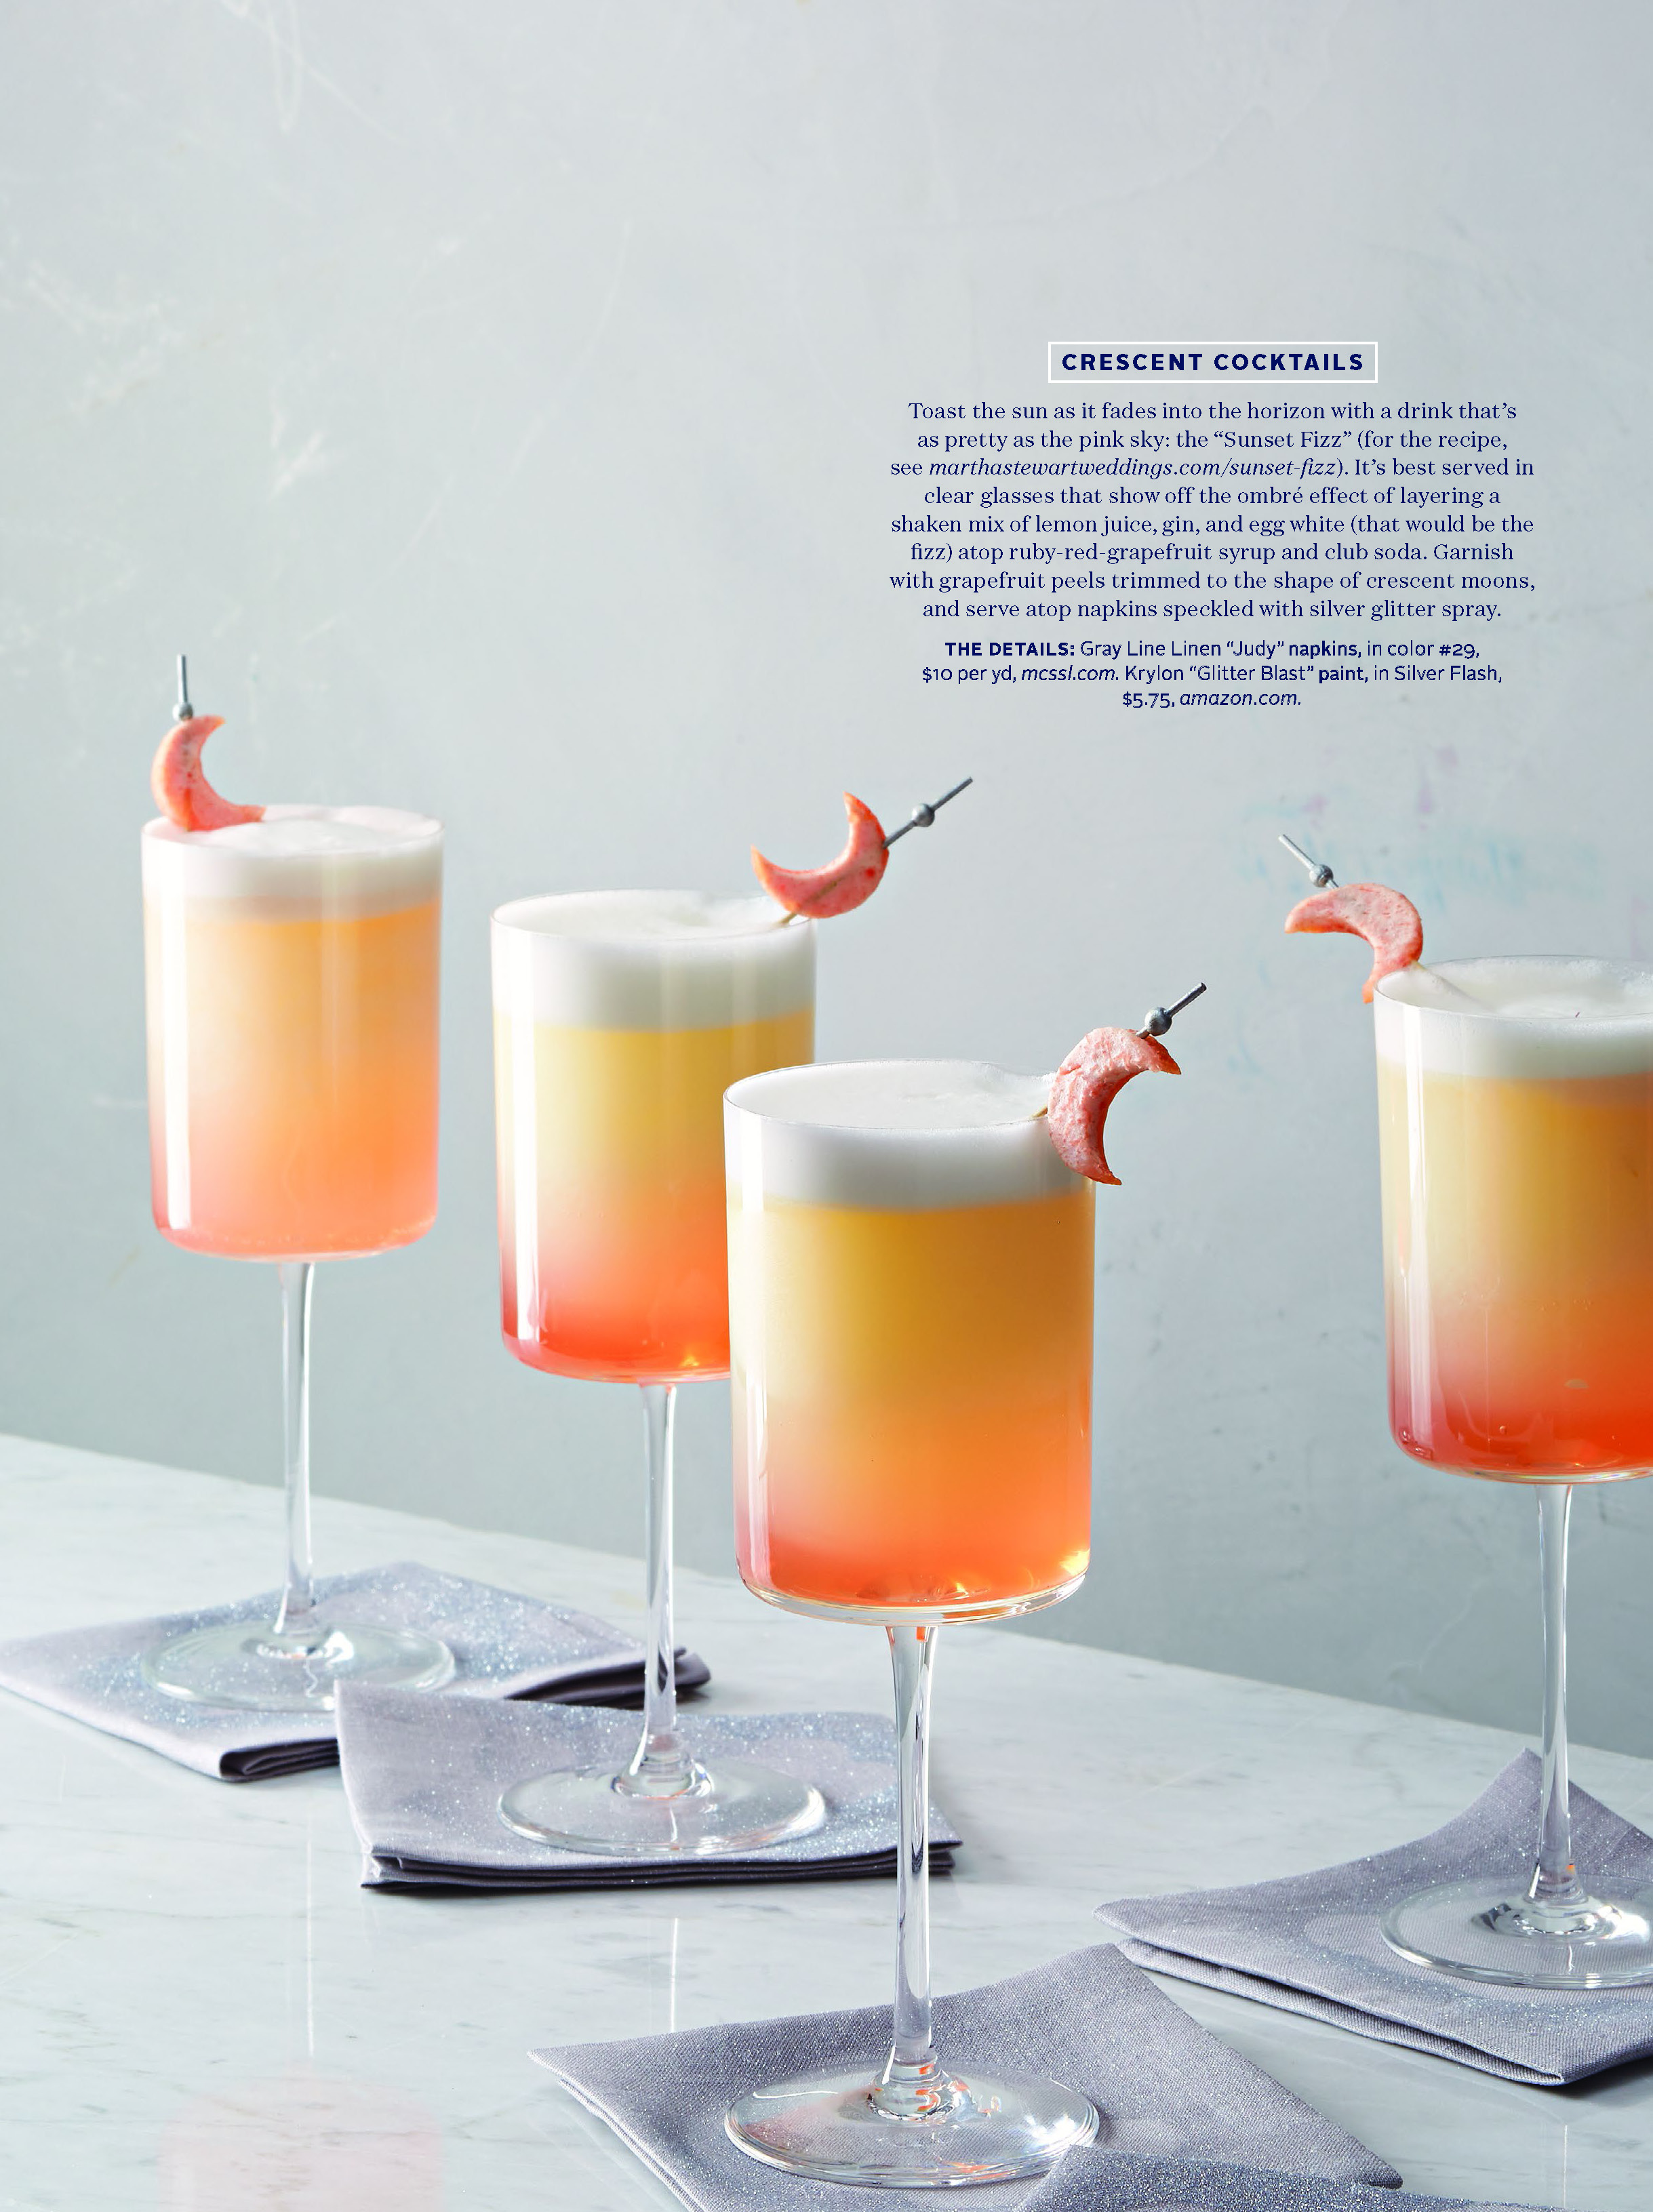 Sunset Fizz (Grapefruit) Cocktail, Martha Stewart Weddings